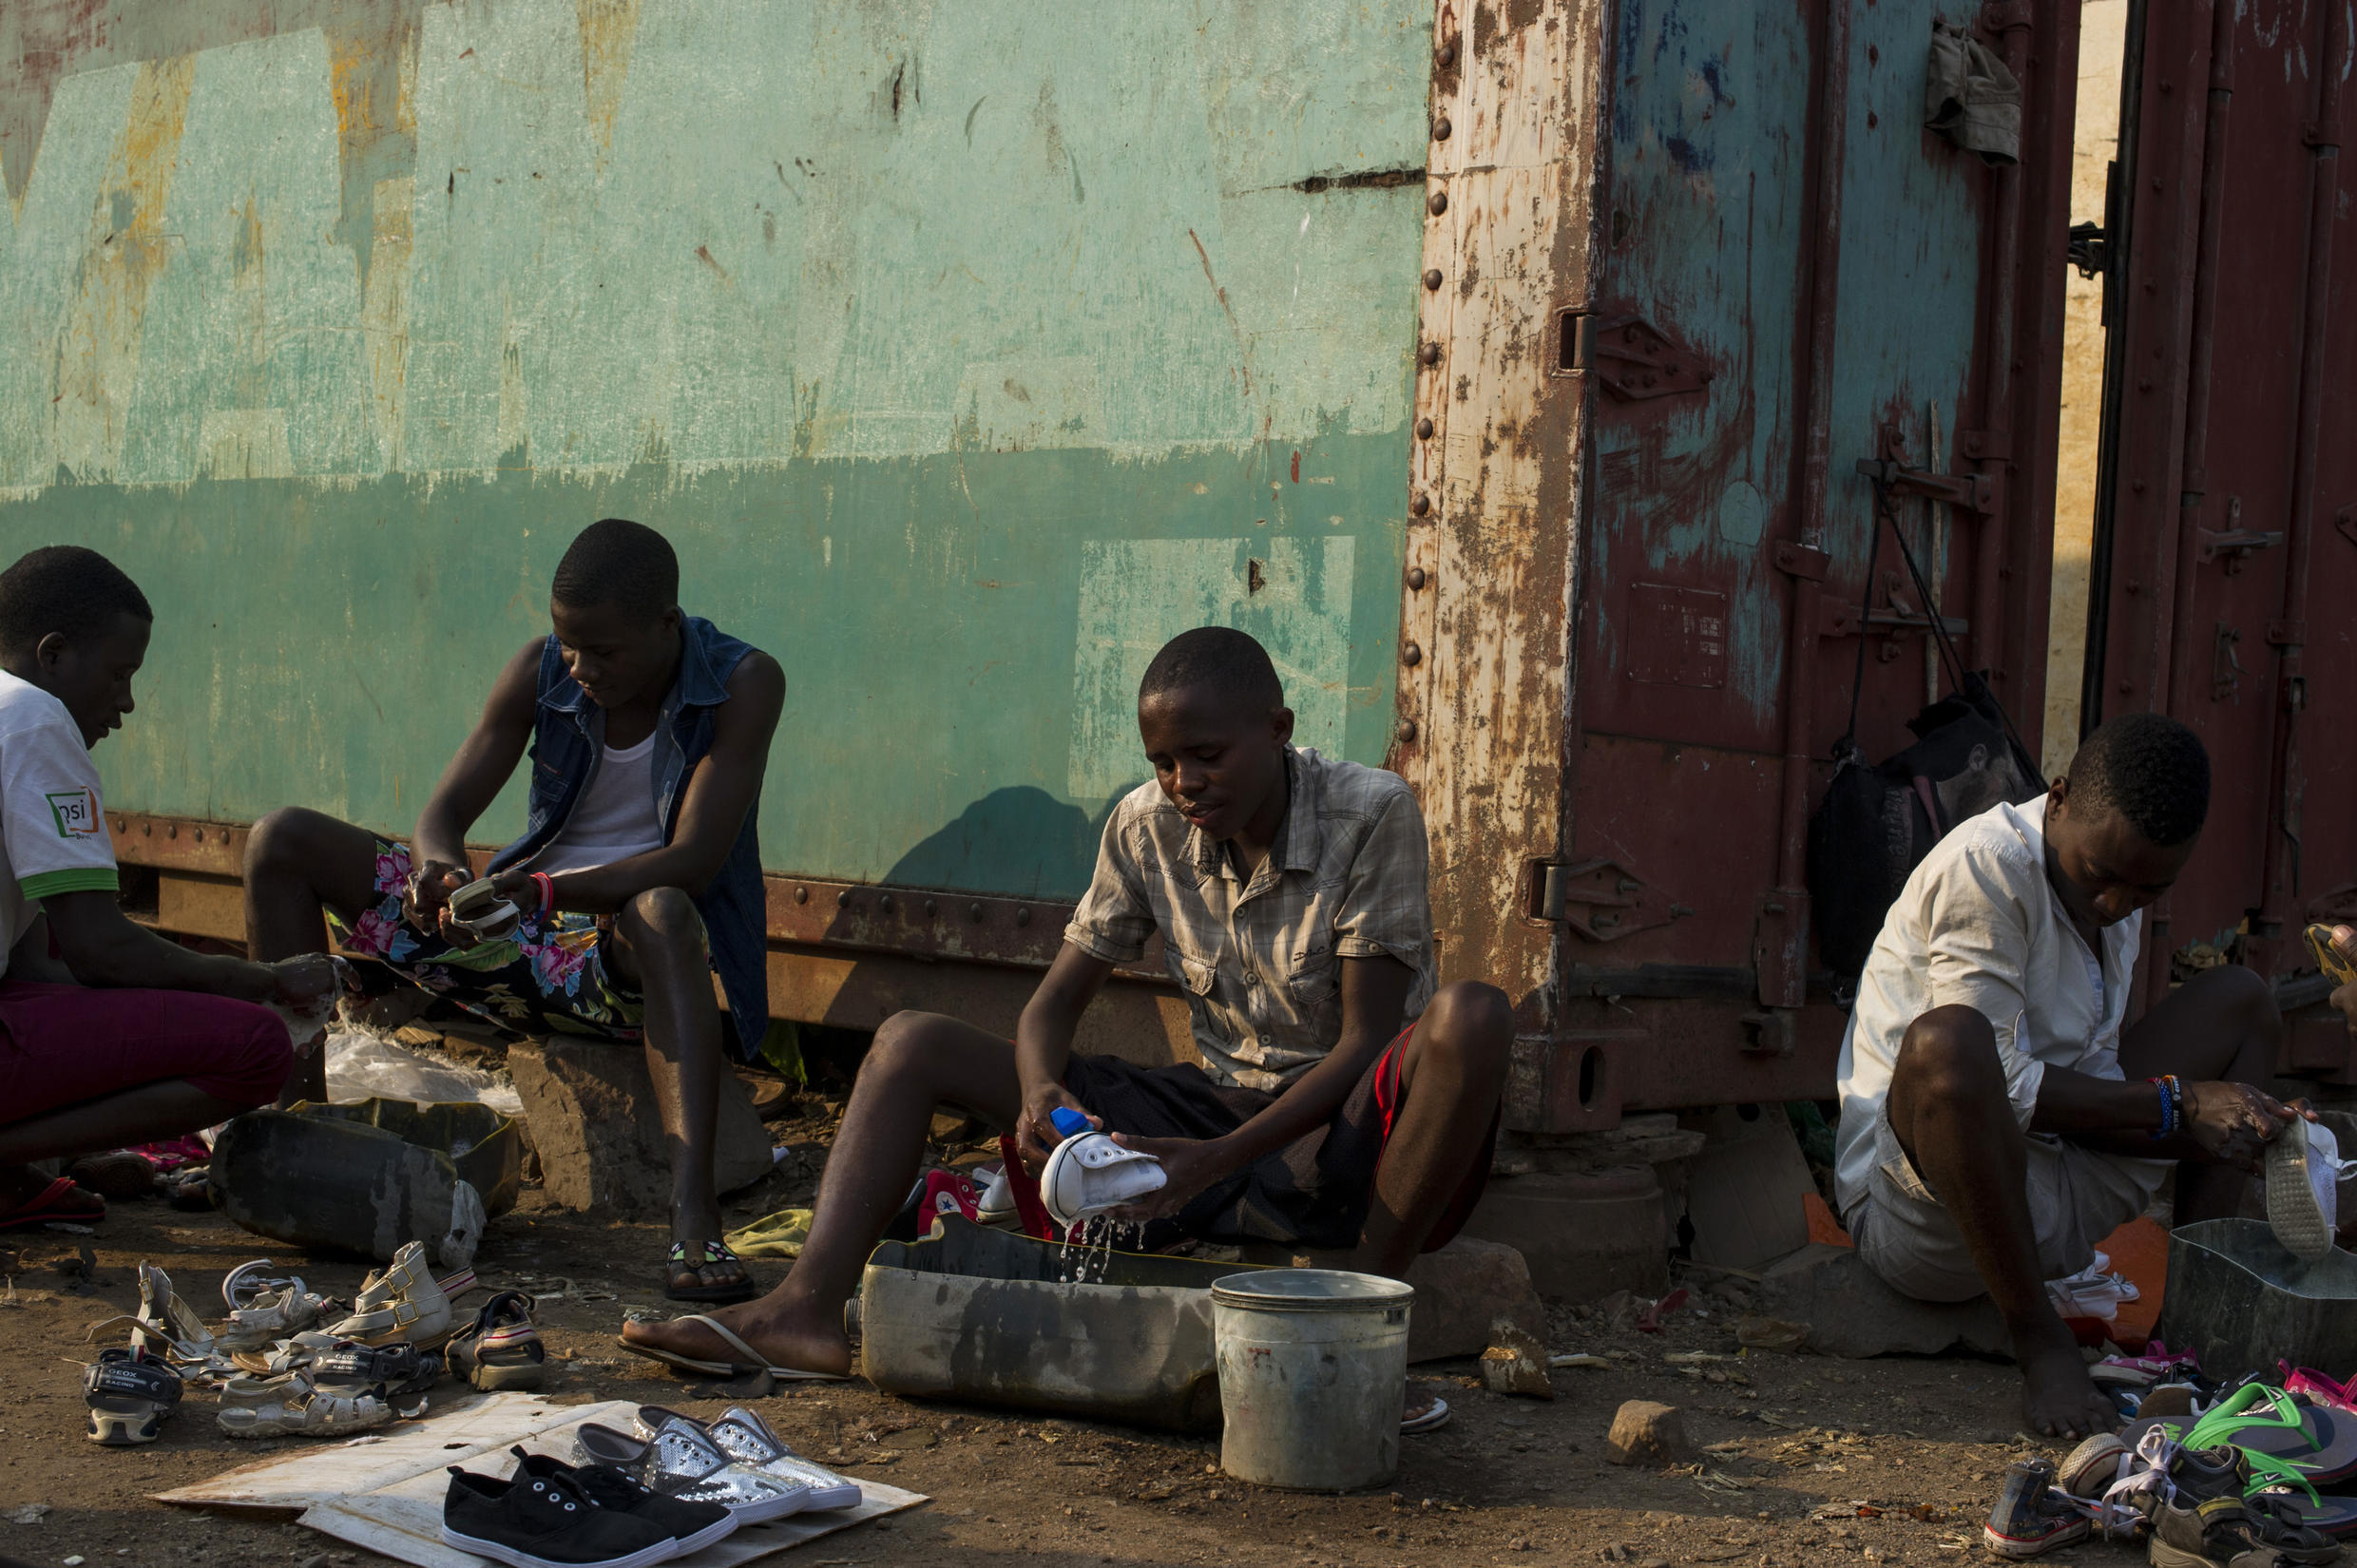 Burundi is the second poorest country in the world, according to the World Bank.